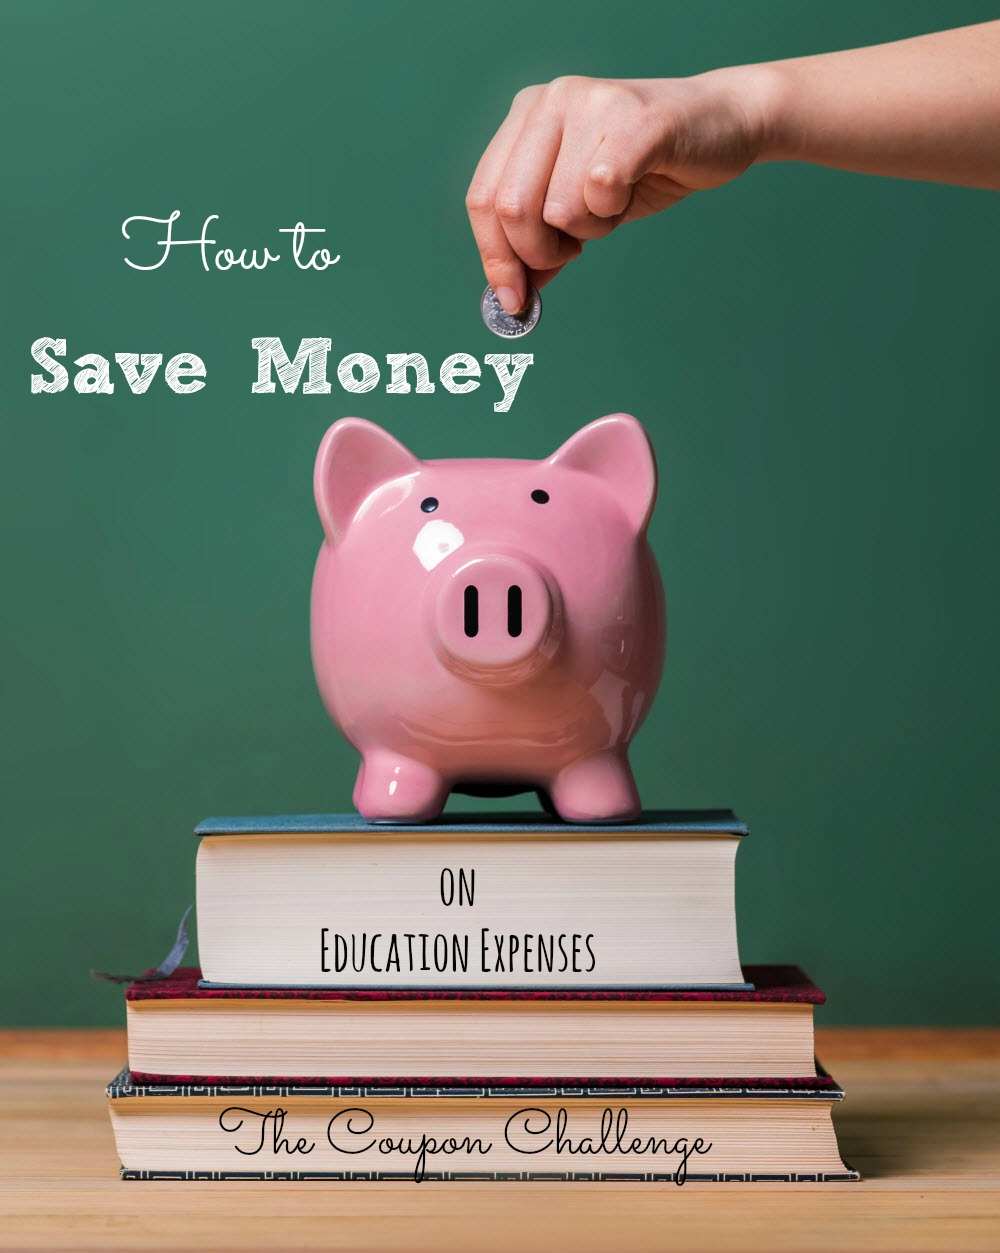 How to Save money on Education Expenses